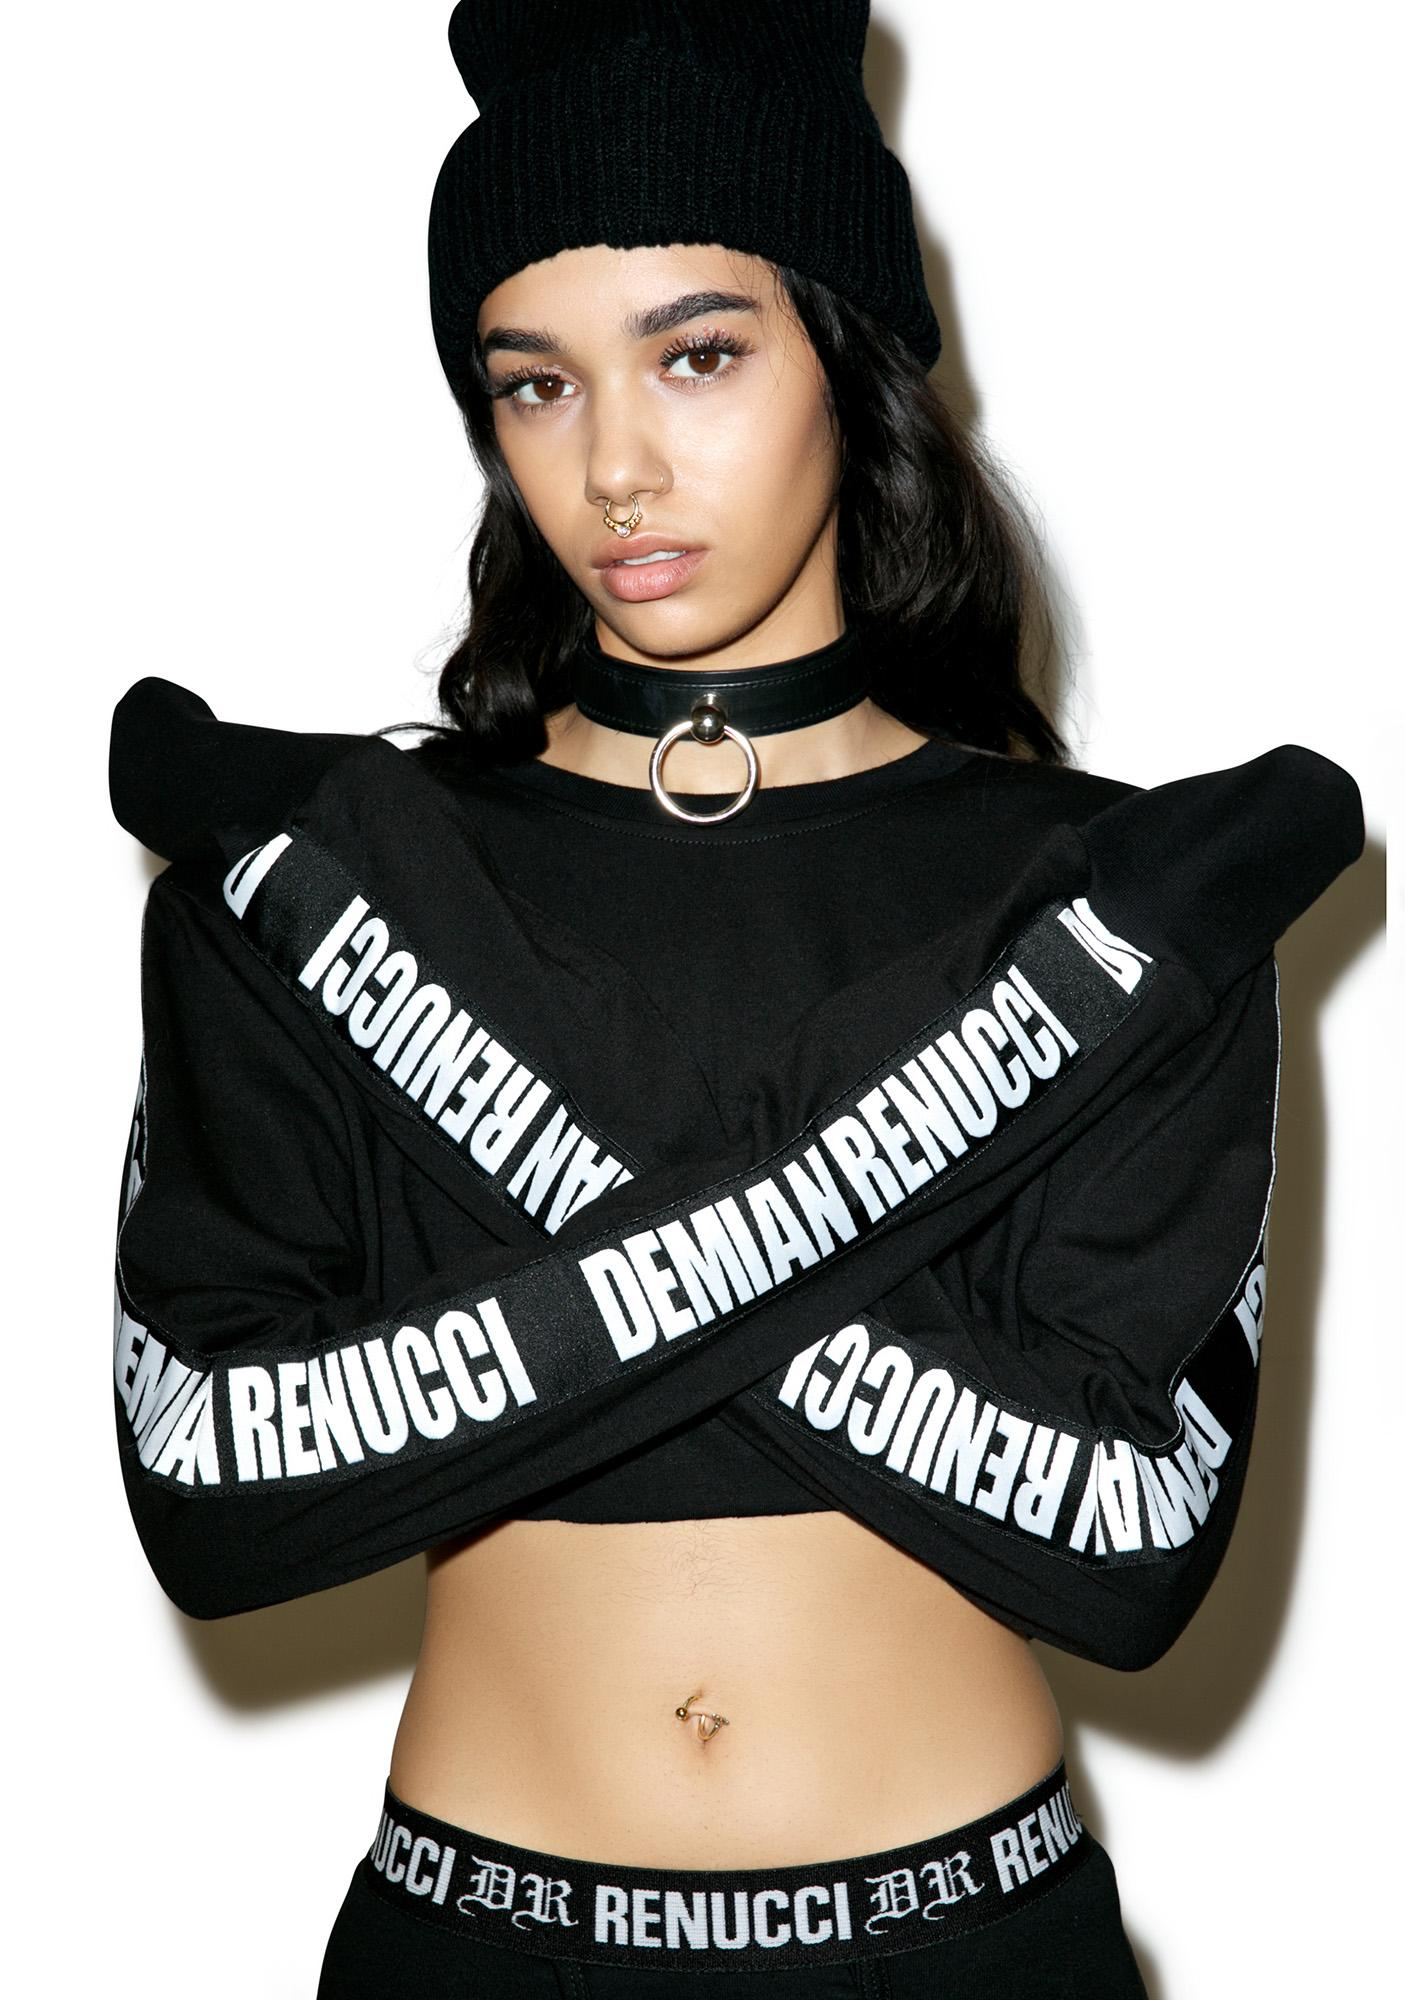 Demian Renucci DR Cropped Long Sleeve Tee